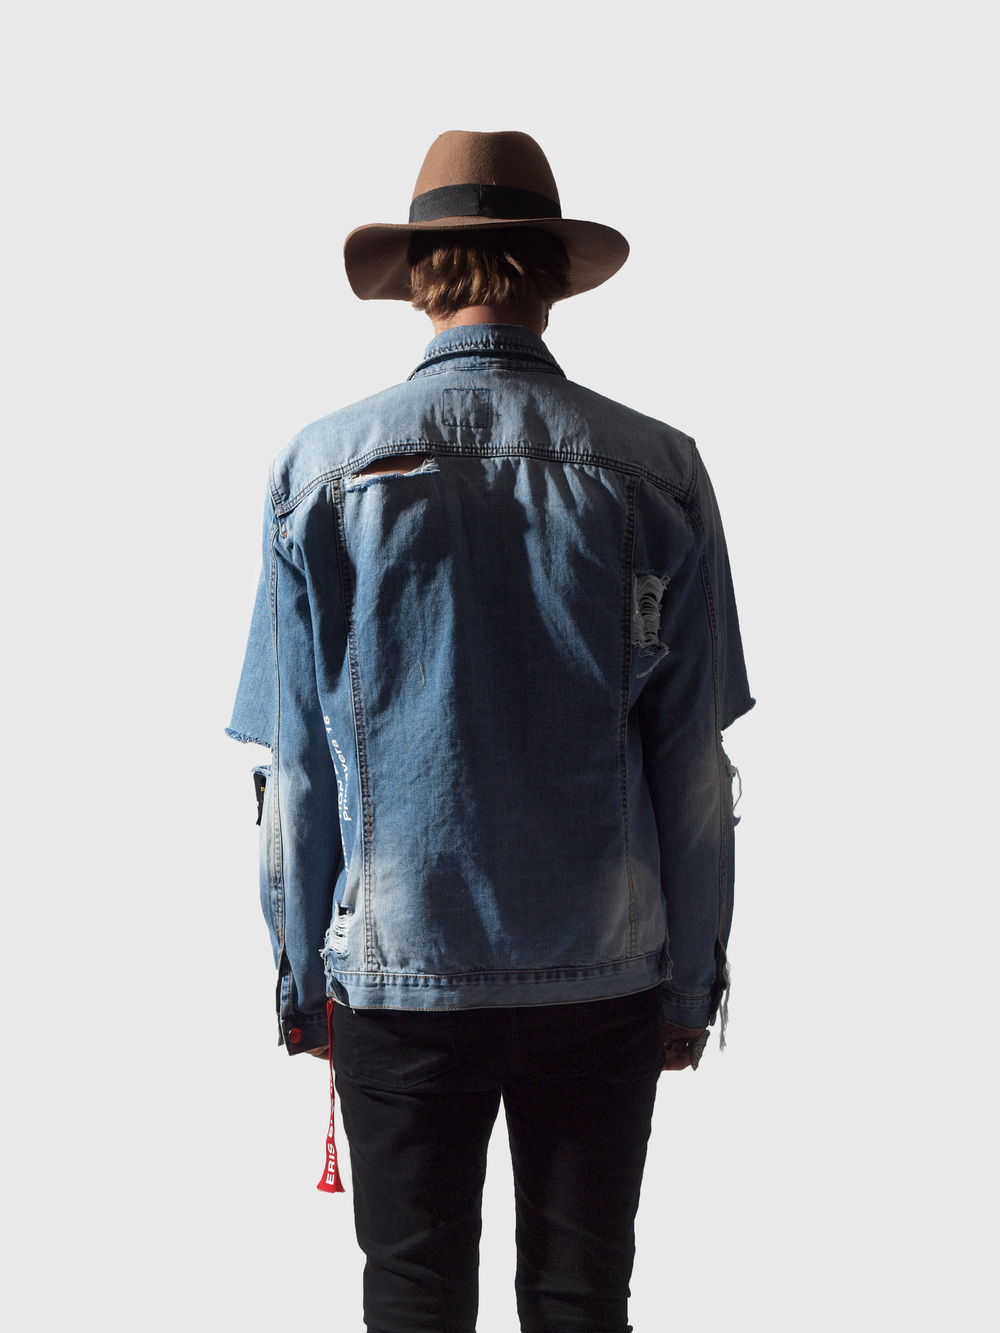 ERIS BLACK - BLUE DENIM JACKET